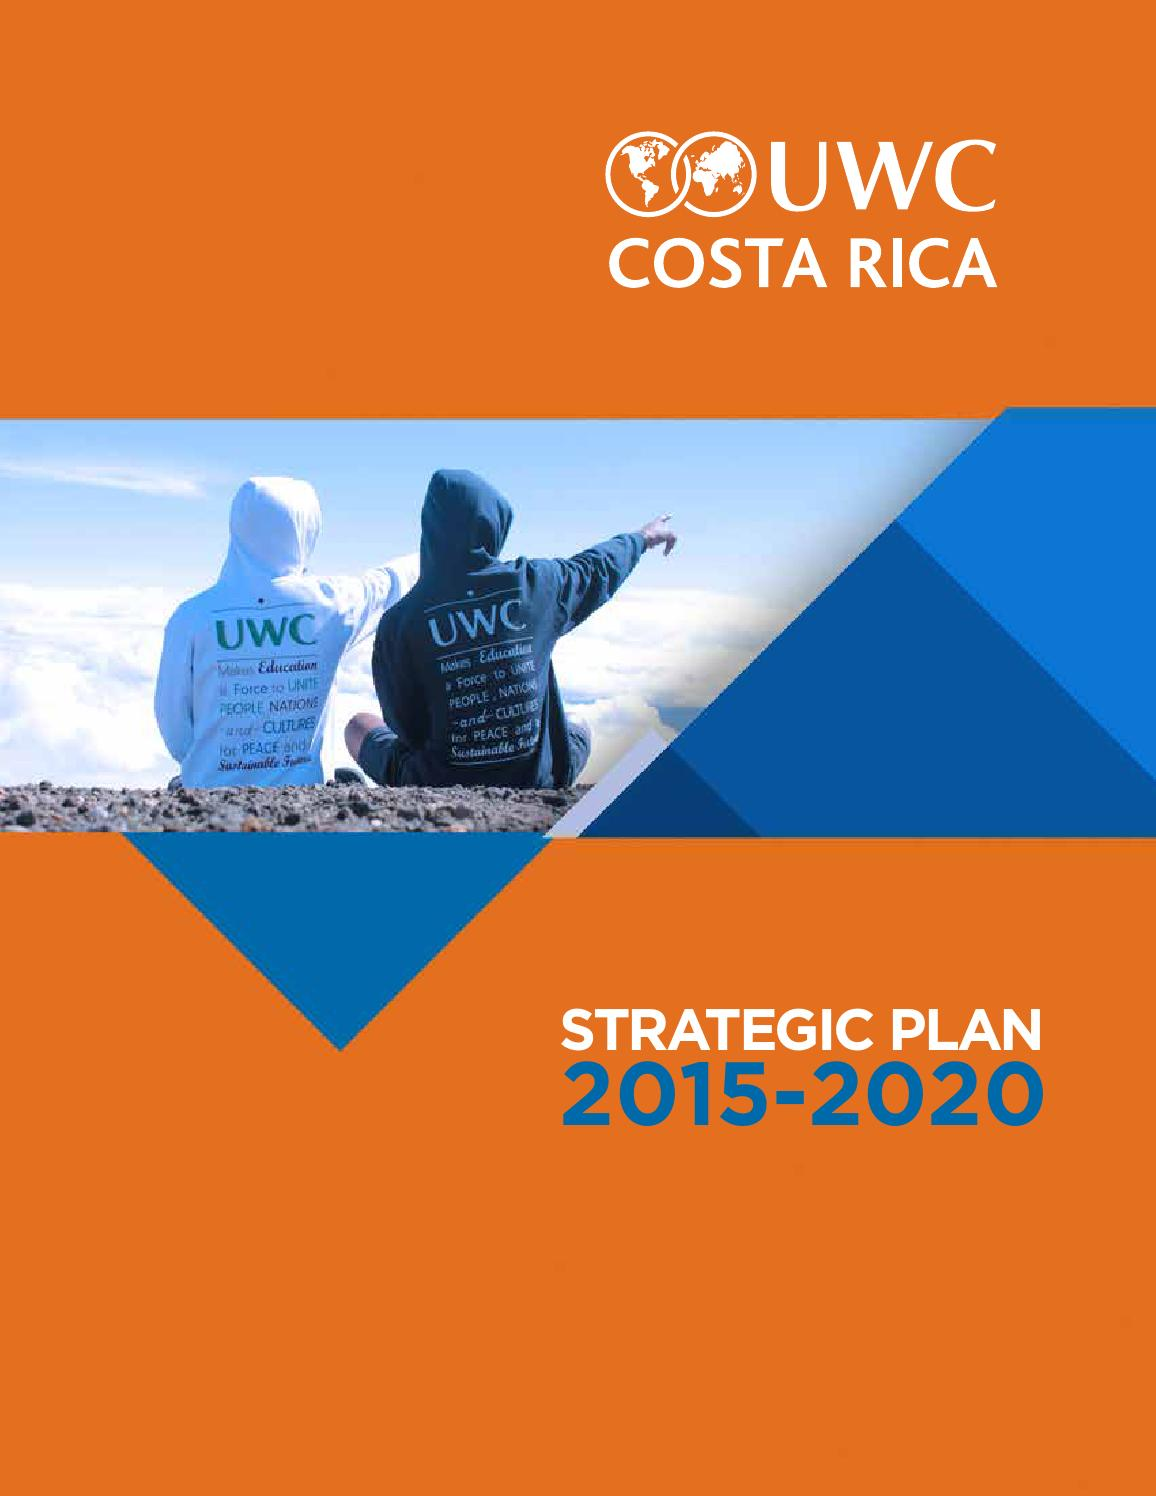 160115 Uwc Costa Rica Strategic Plan 2015 2020 By Harold